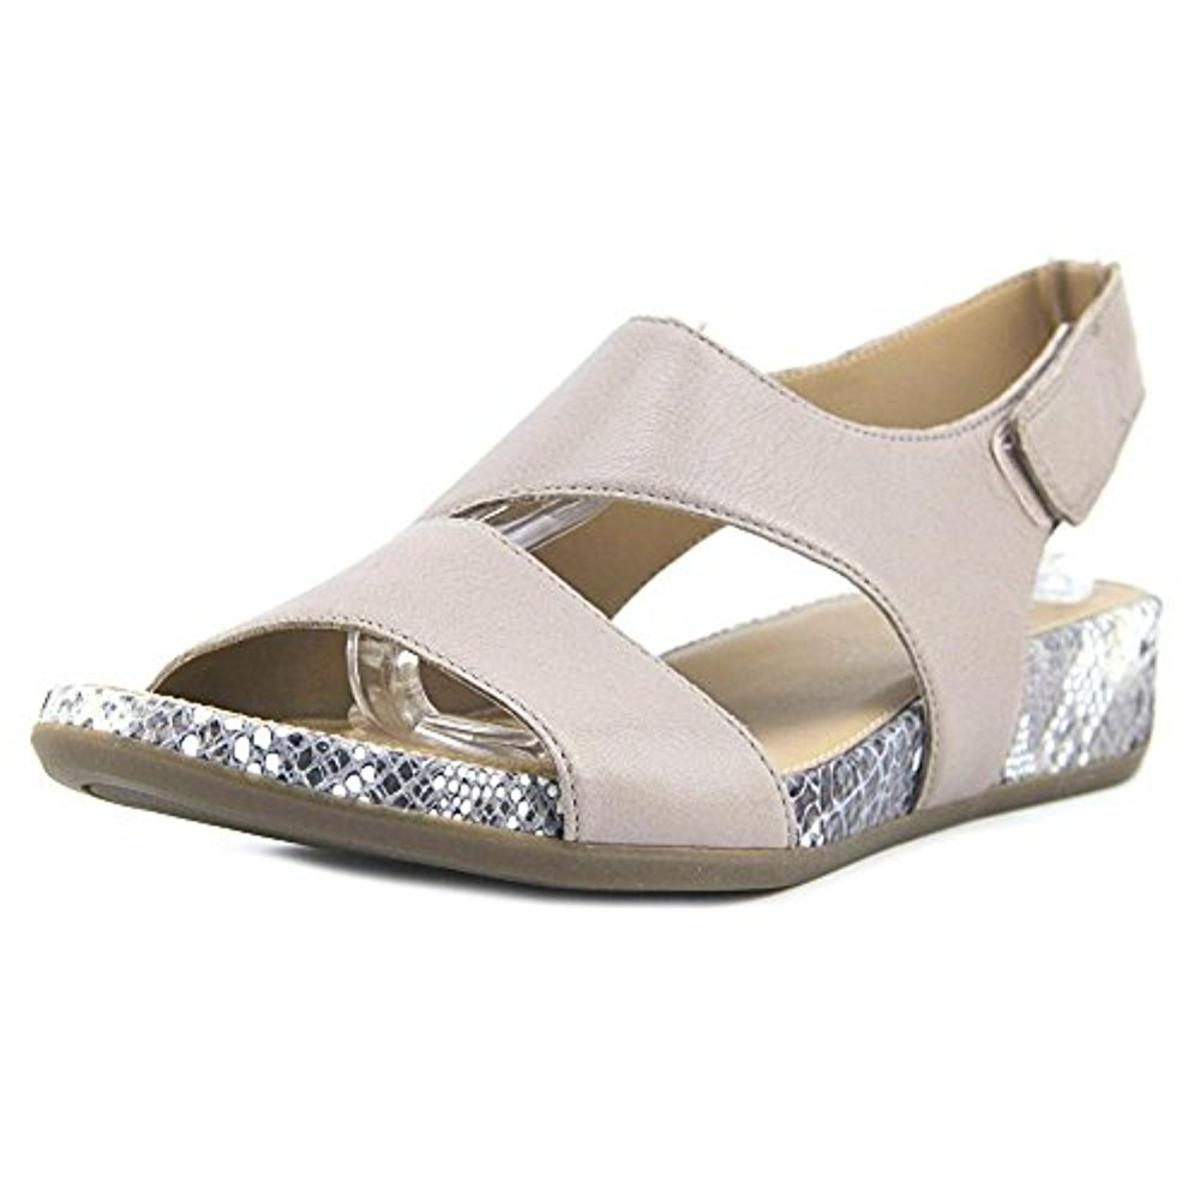 Naturalizer-Womens-Yessica-Leather-Snake-Trim-Wedge-Sandals-Shoes-BHFO-3461